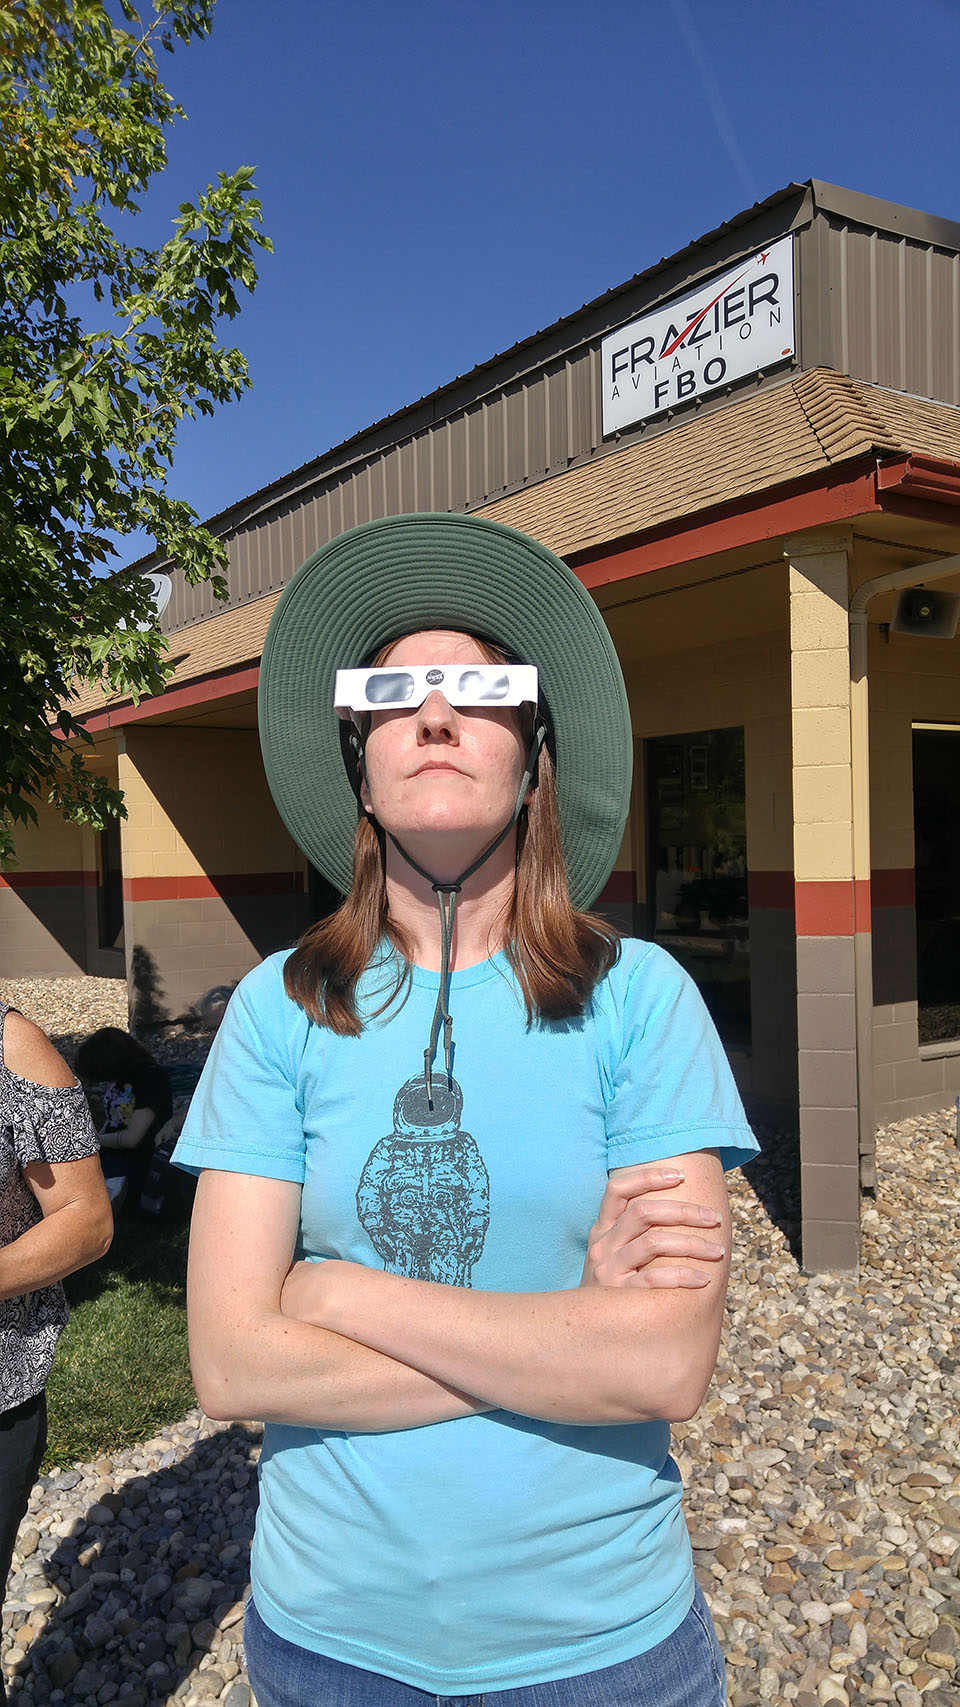 My wife safely watching the eclipse with her eclipse glasses.